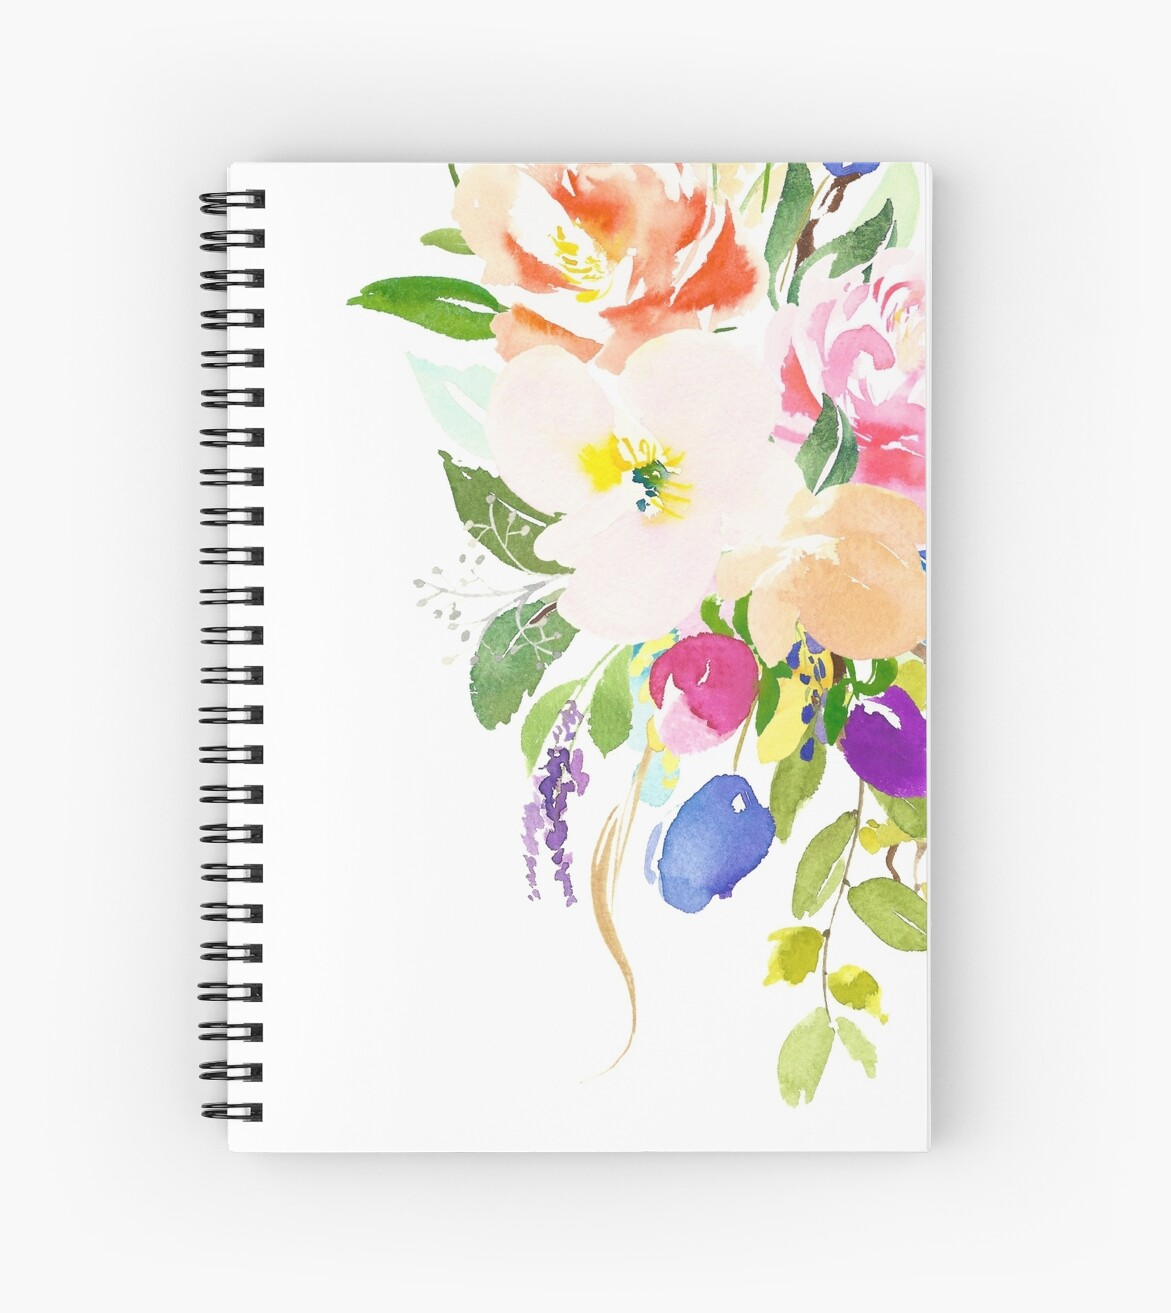 Watercolor Floral Bouquet Mixed Flowers Spiral Notebook By